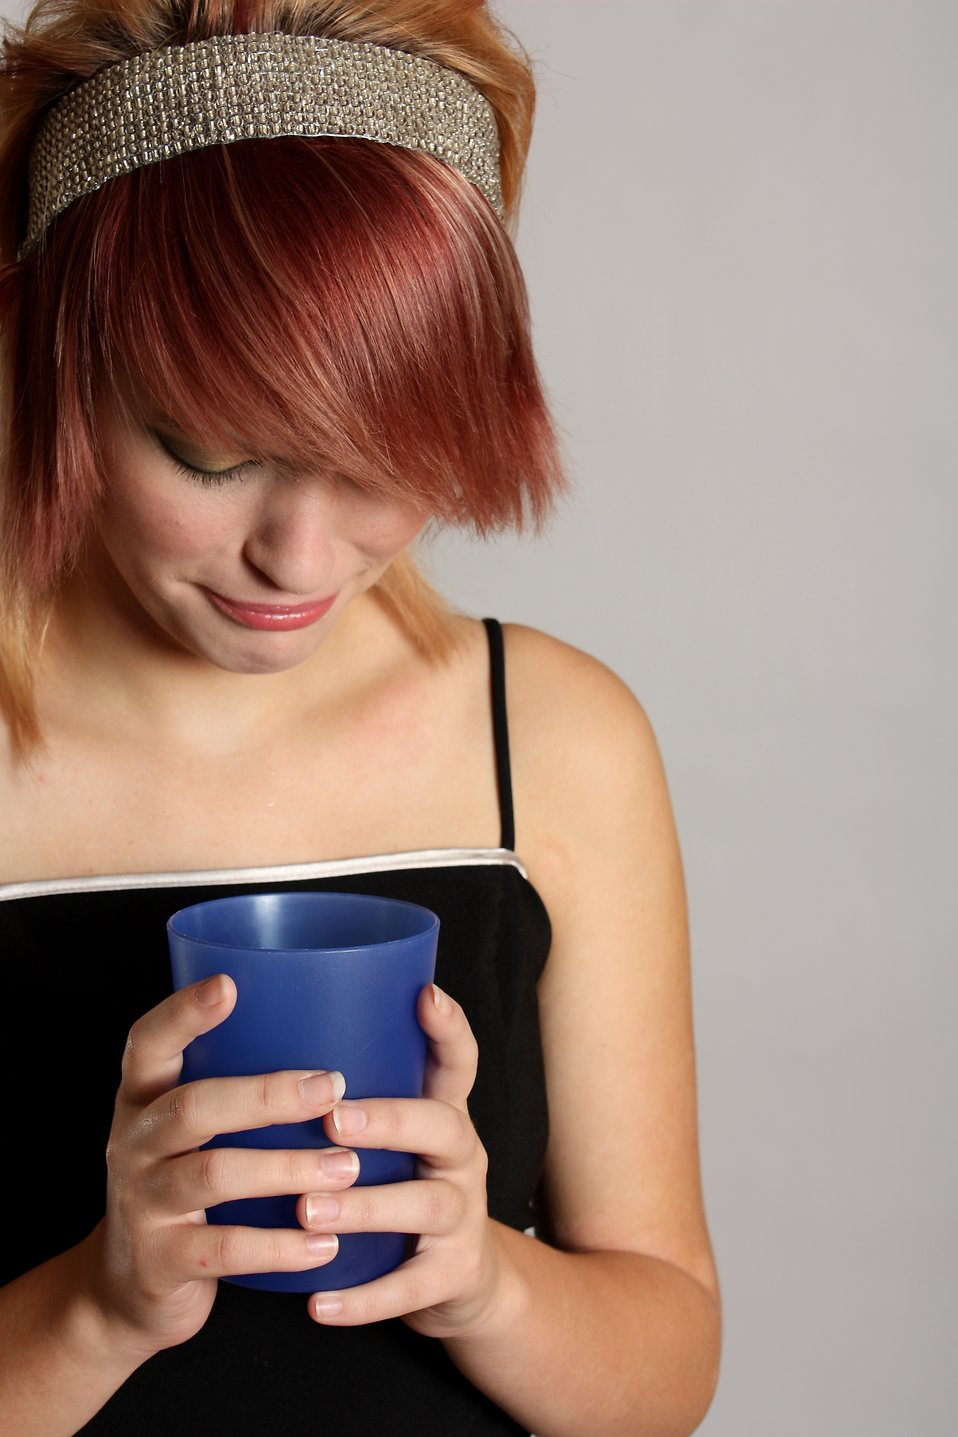 A beautiful girl looking unhappily into a drink in a plastic cup : Free Stock Photo